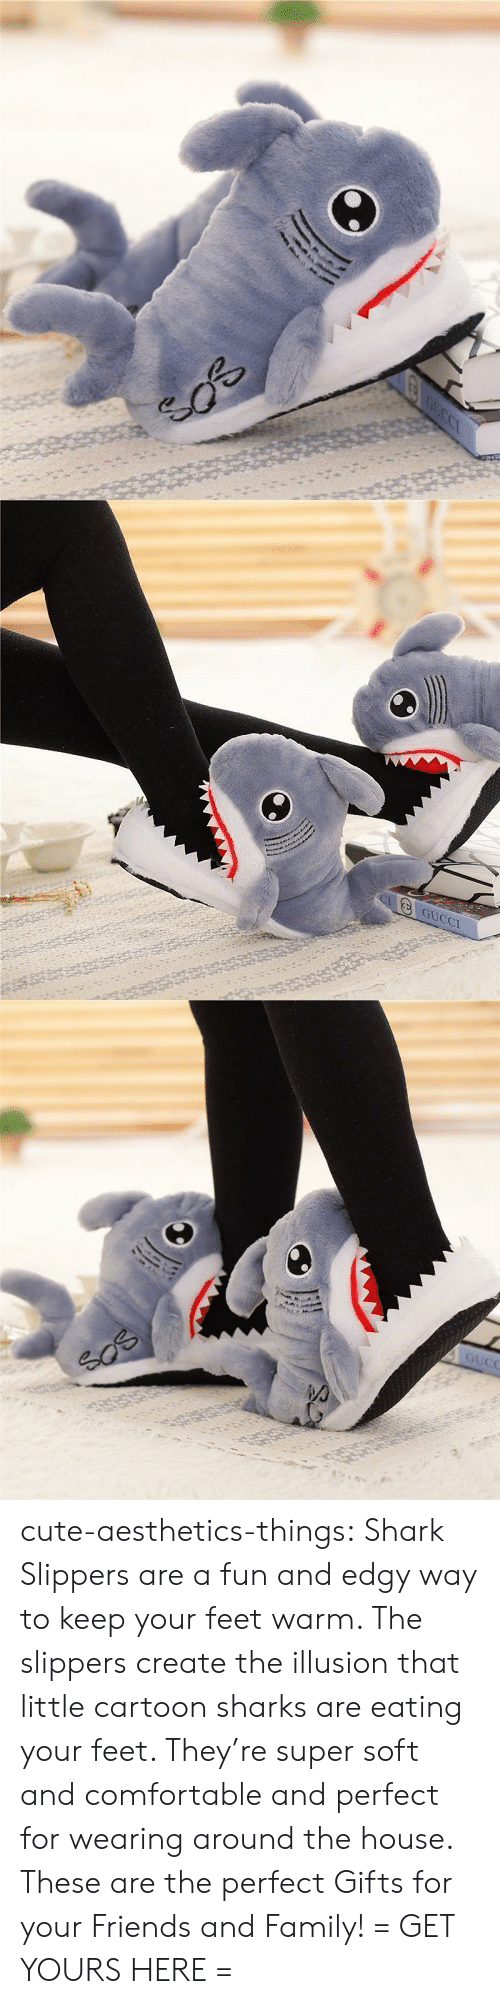 Comfortable, Cute, and Family: GUCCI cute-aesthetics-things: Shark Slippers are a fun and edgy way to keep your feet warm. The slippers create the illusion that little cartoon sharks are eating your feet. They're super soft and comfortable and perfect for wearing around the house. These are the perfect Gifts for your Friends and Family! = GET YOURS HERE =